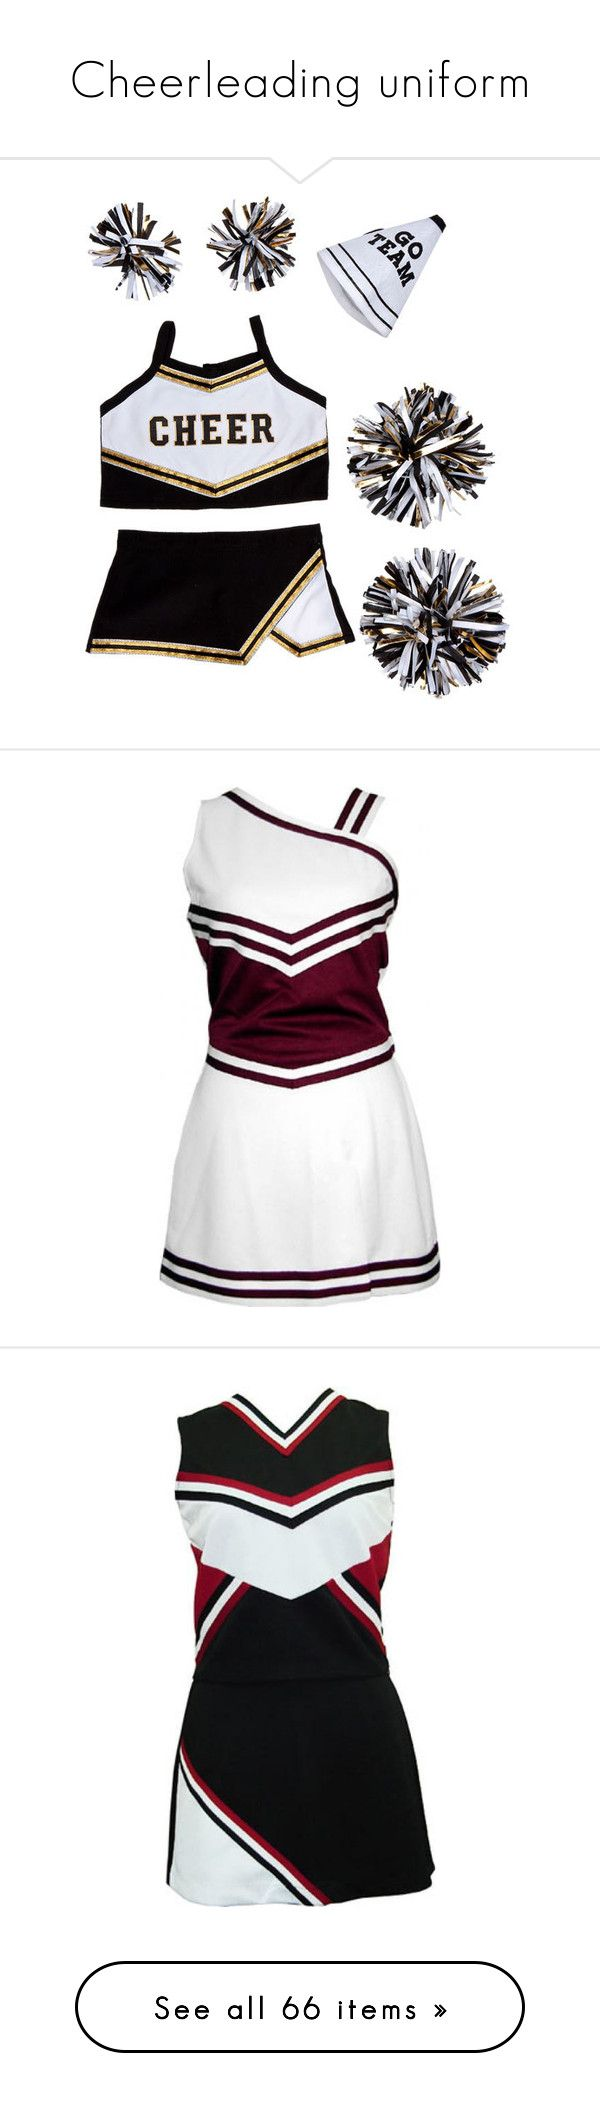 """Cheerleading uniform"" by jdbm6467 ❤ liked on Polyvore featuring cheerleader, cheerleading, dresses, cheer, sports, uniform, outfit, tops, cheer uniforms and cheerleading stuff"